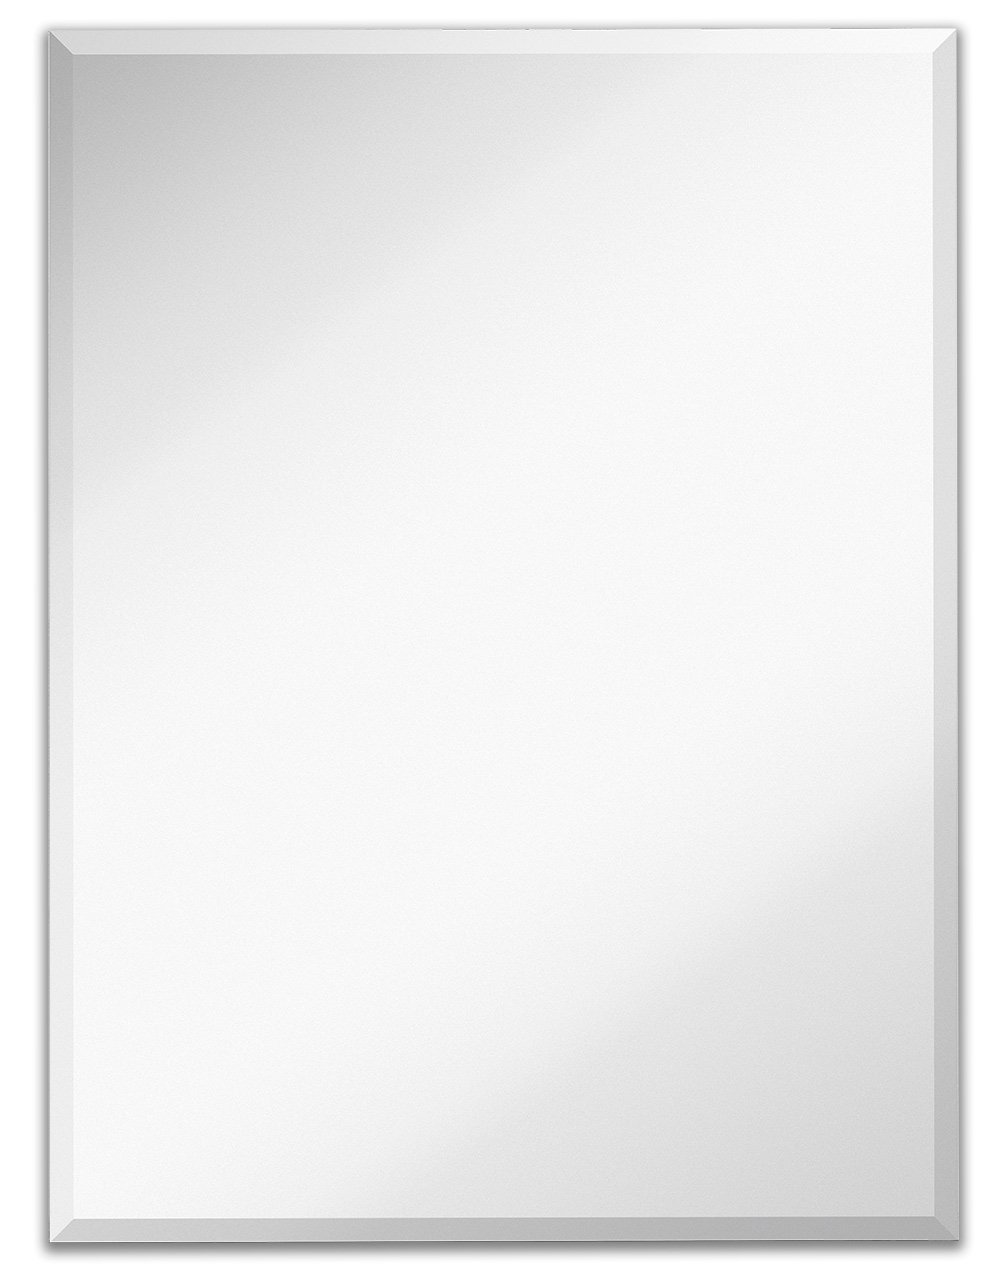 Large Simple Rectangular Streamlined 1 Inch Beveled Wall Mirror | Premium Silver Backed Rectangle Mirrored Glass Panel Vanity, Bedroom, or Bathroom Hangs Horizontal & Vertical Frameless (30''W x 40''H)